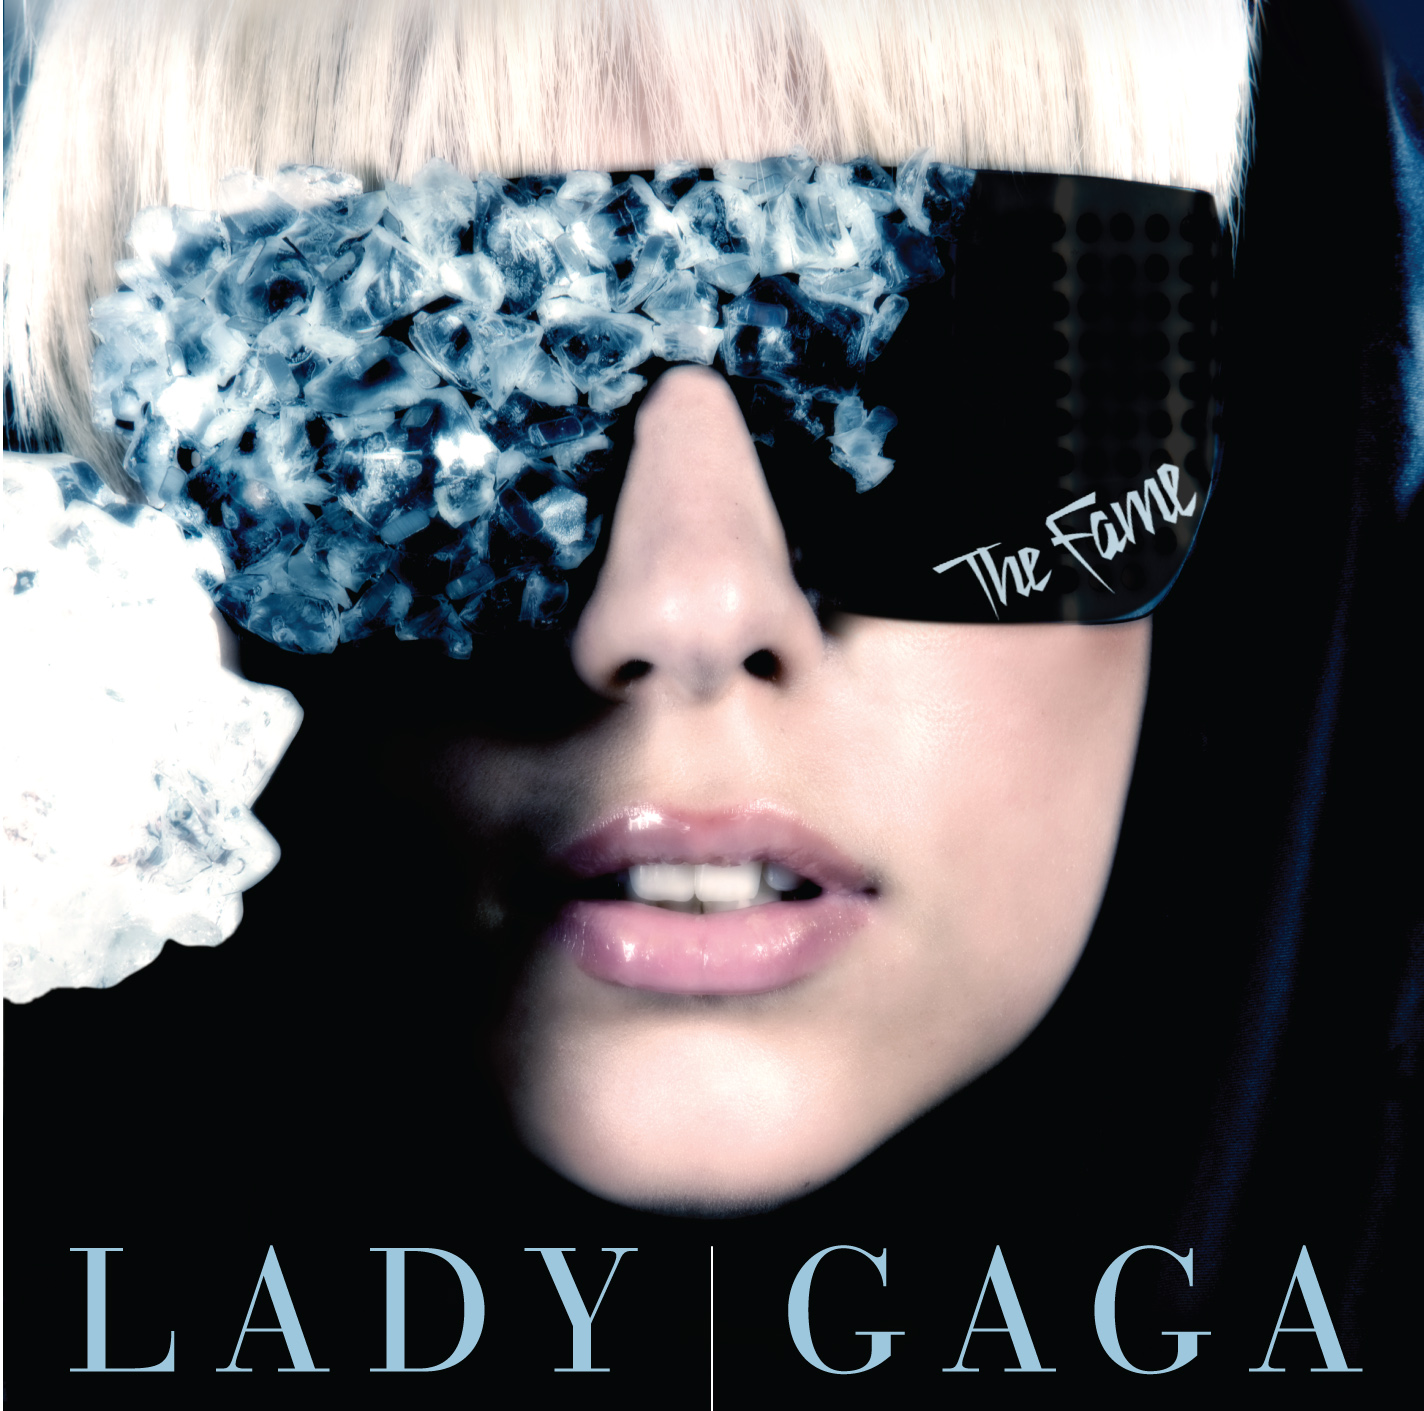 Lady Gaga into the fame